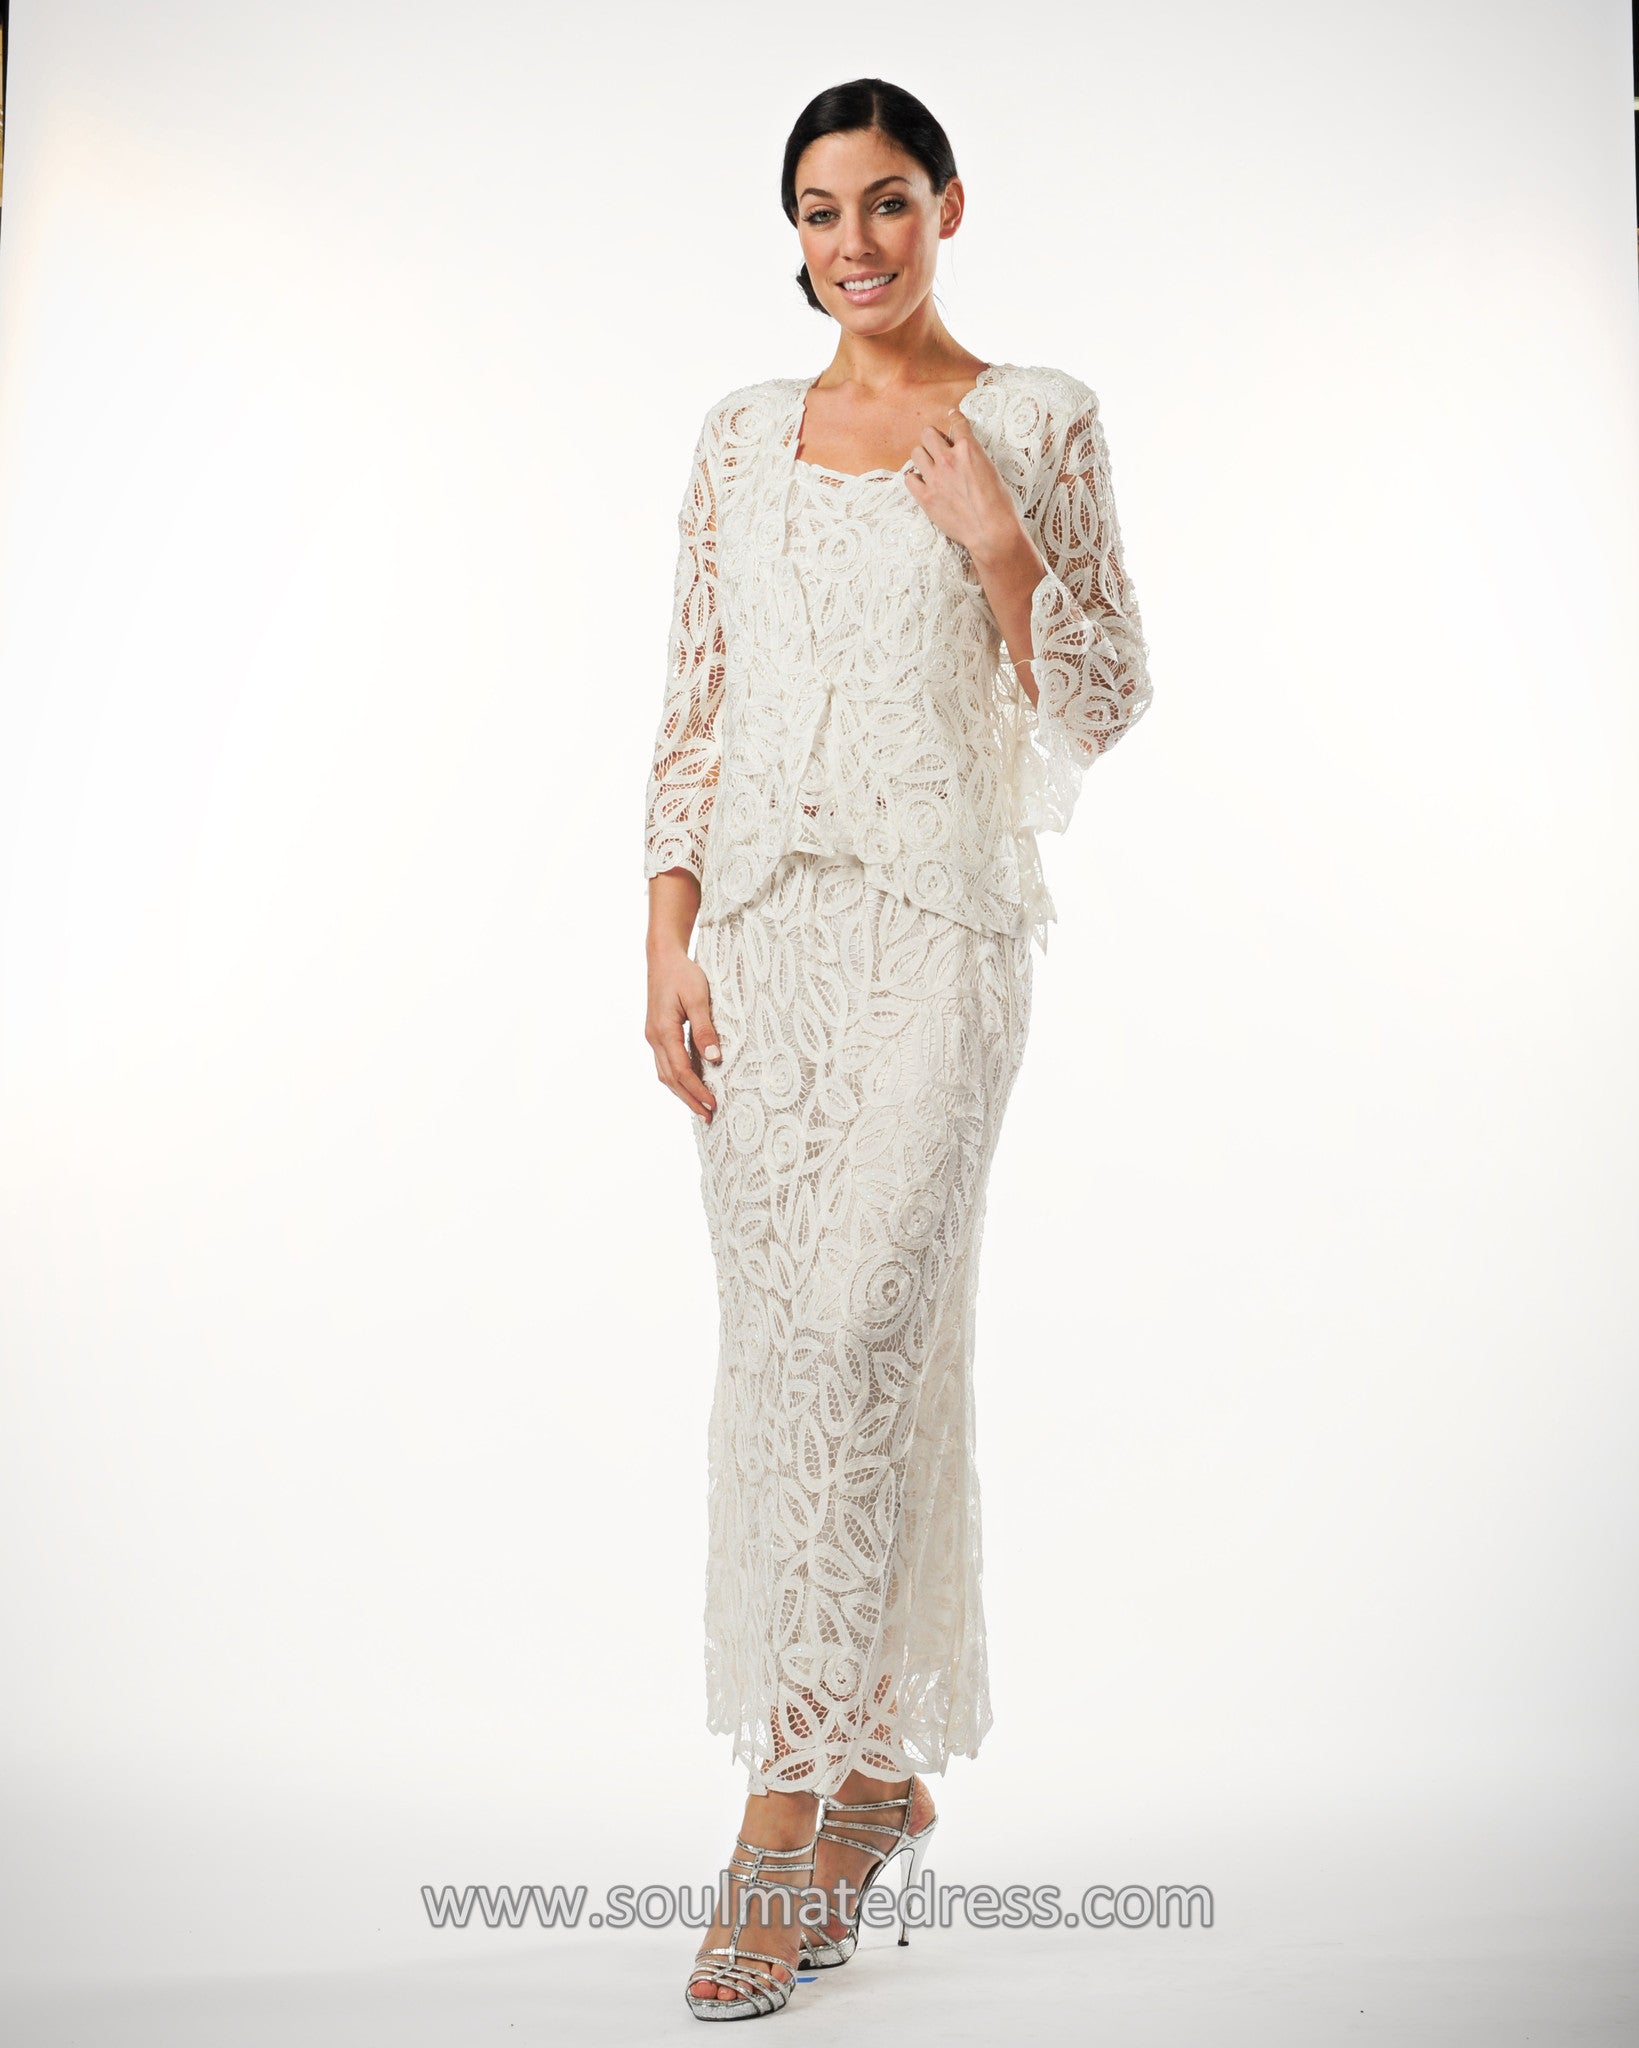 D7107 Hand Crochet 34 Bell Sleeve Three Piece Evening Gown Soulmates